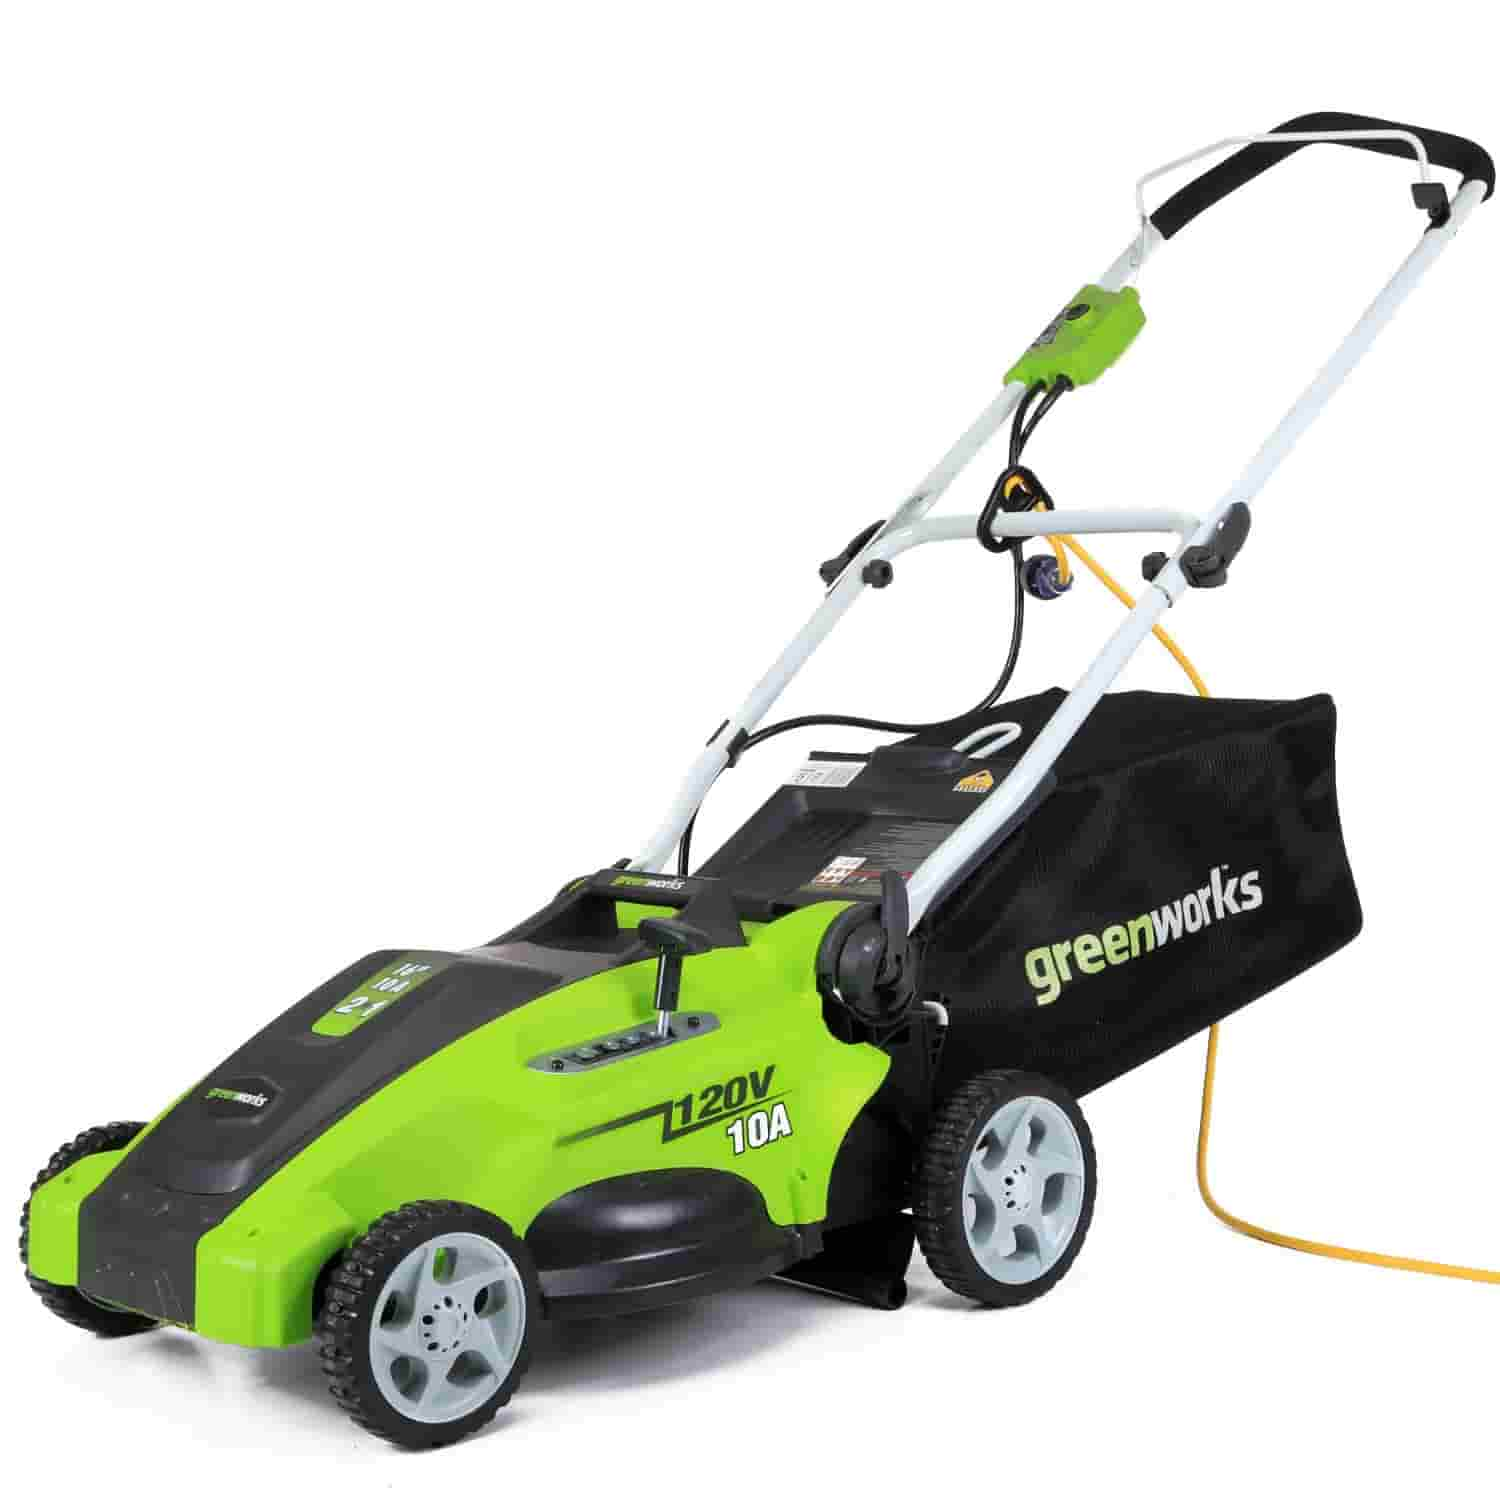 GreenWorks-25142-10-Amp-Corded-16-Inch-Lawn-Mower